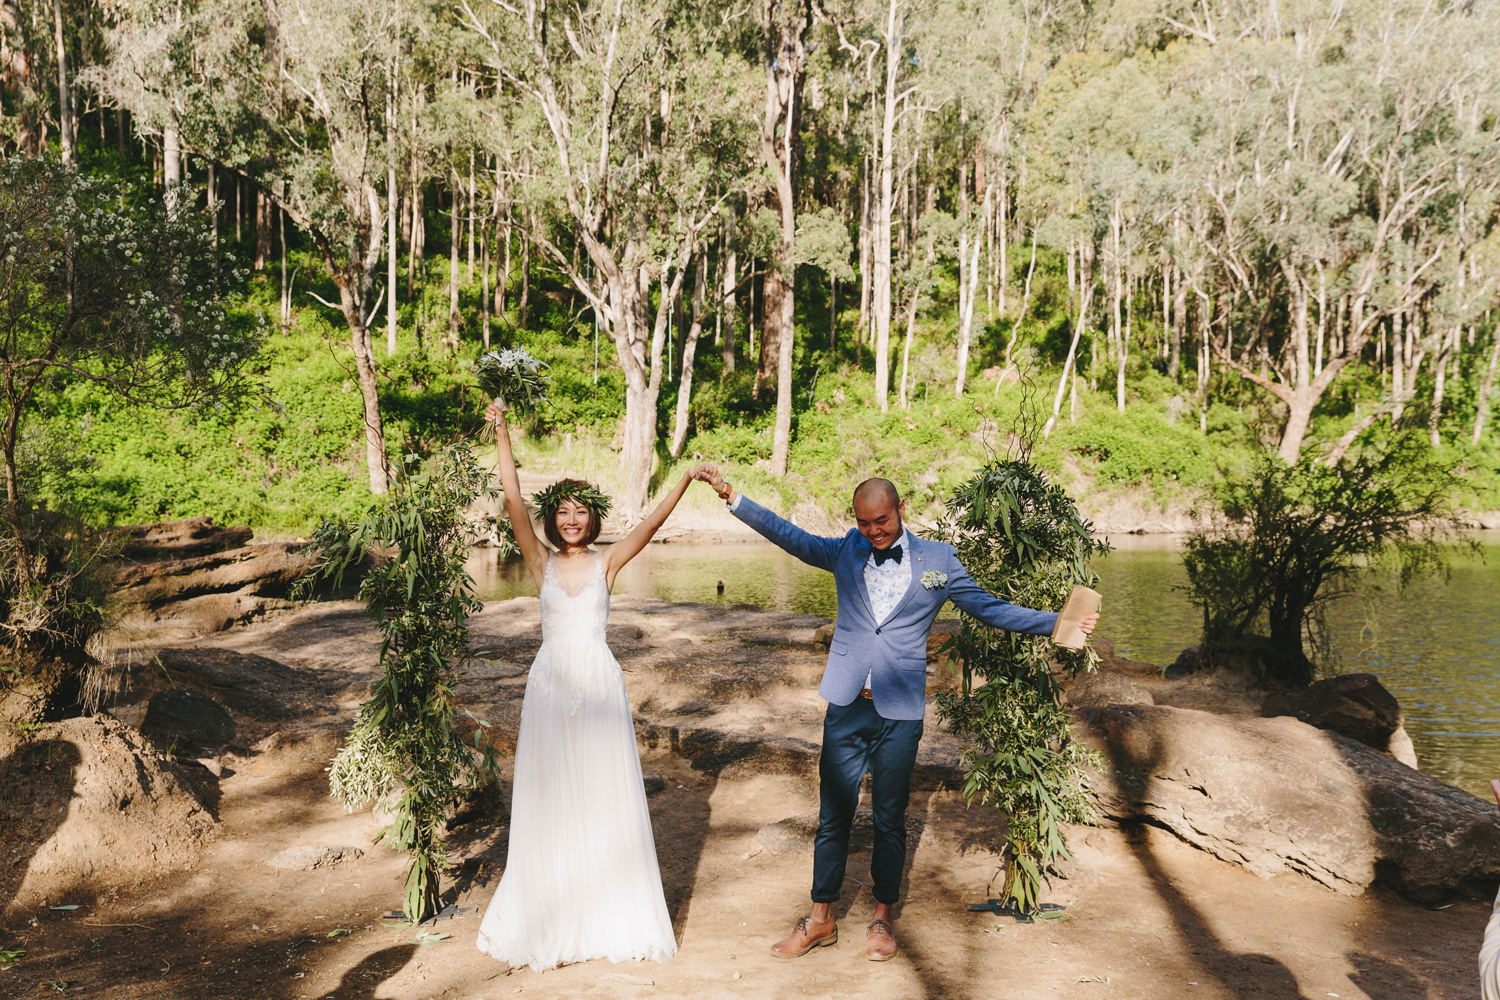 117-Barn_Wedding_Australia_Sam_Ting.jpg